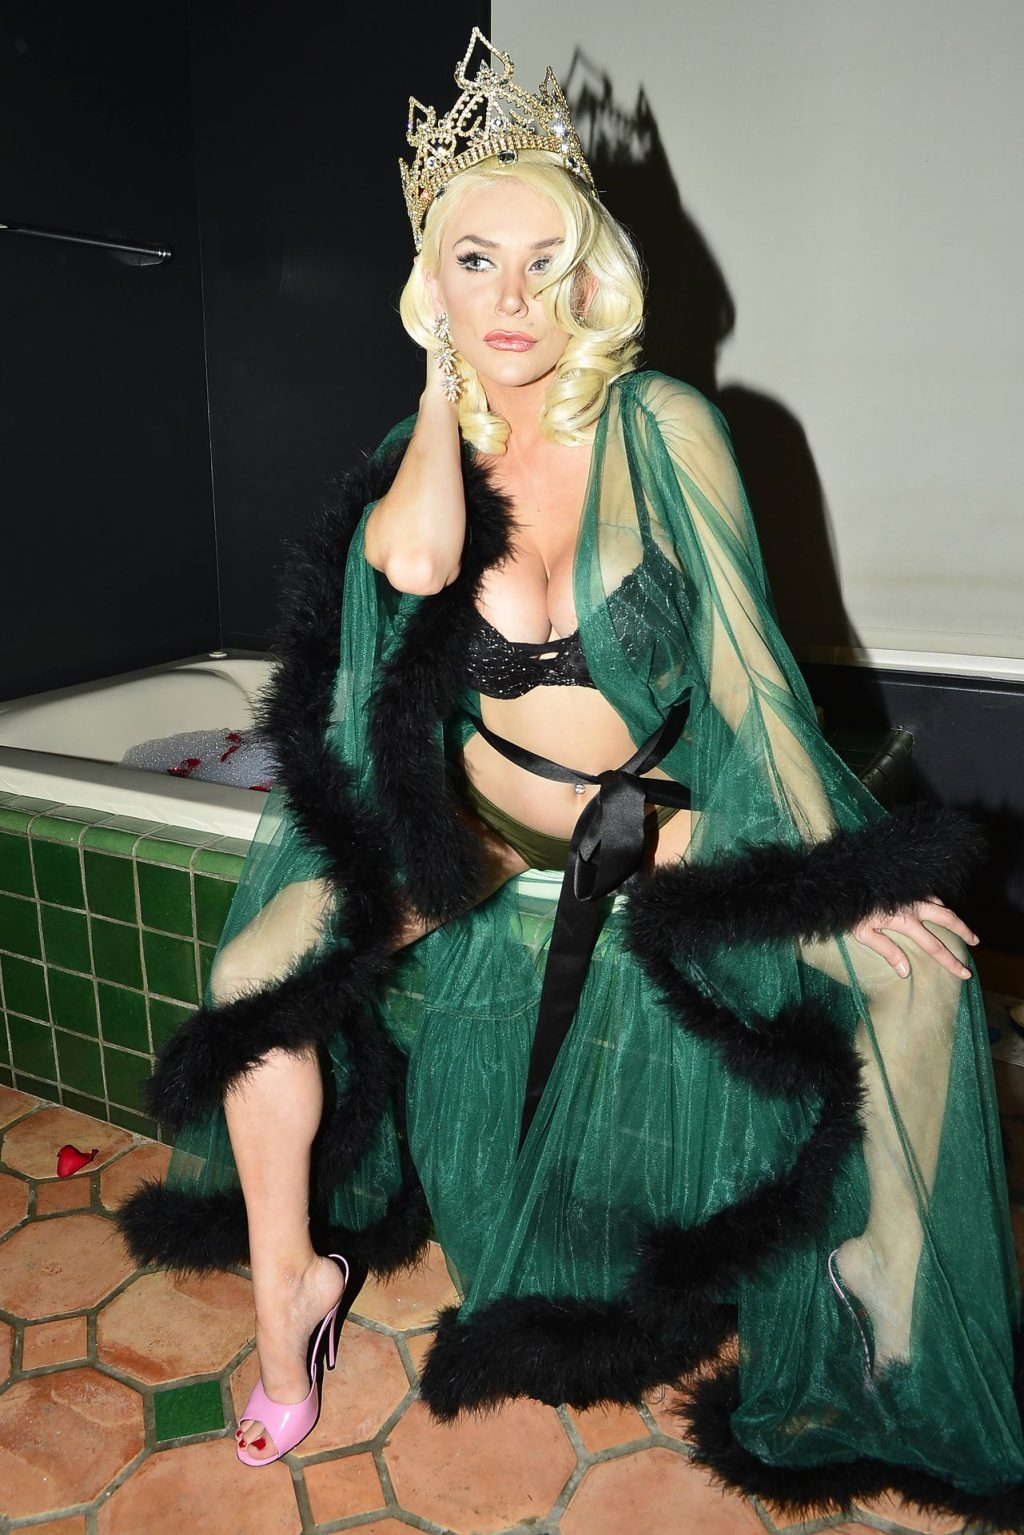 Courtney Stodden Nude Sexy Thefappeningblog Com 14 1024x1535